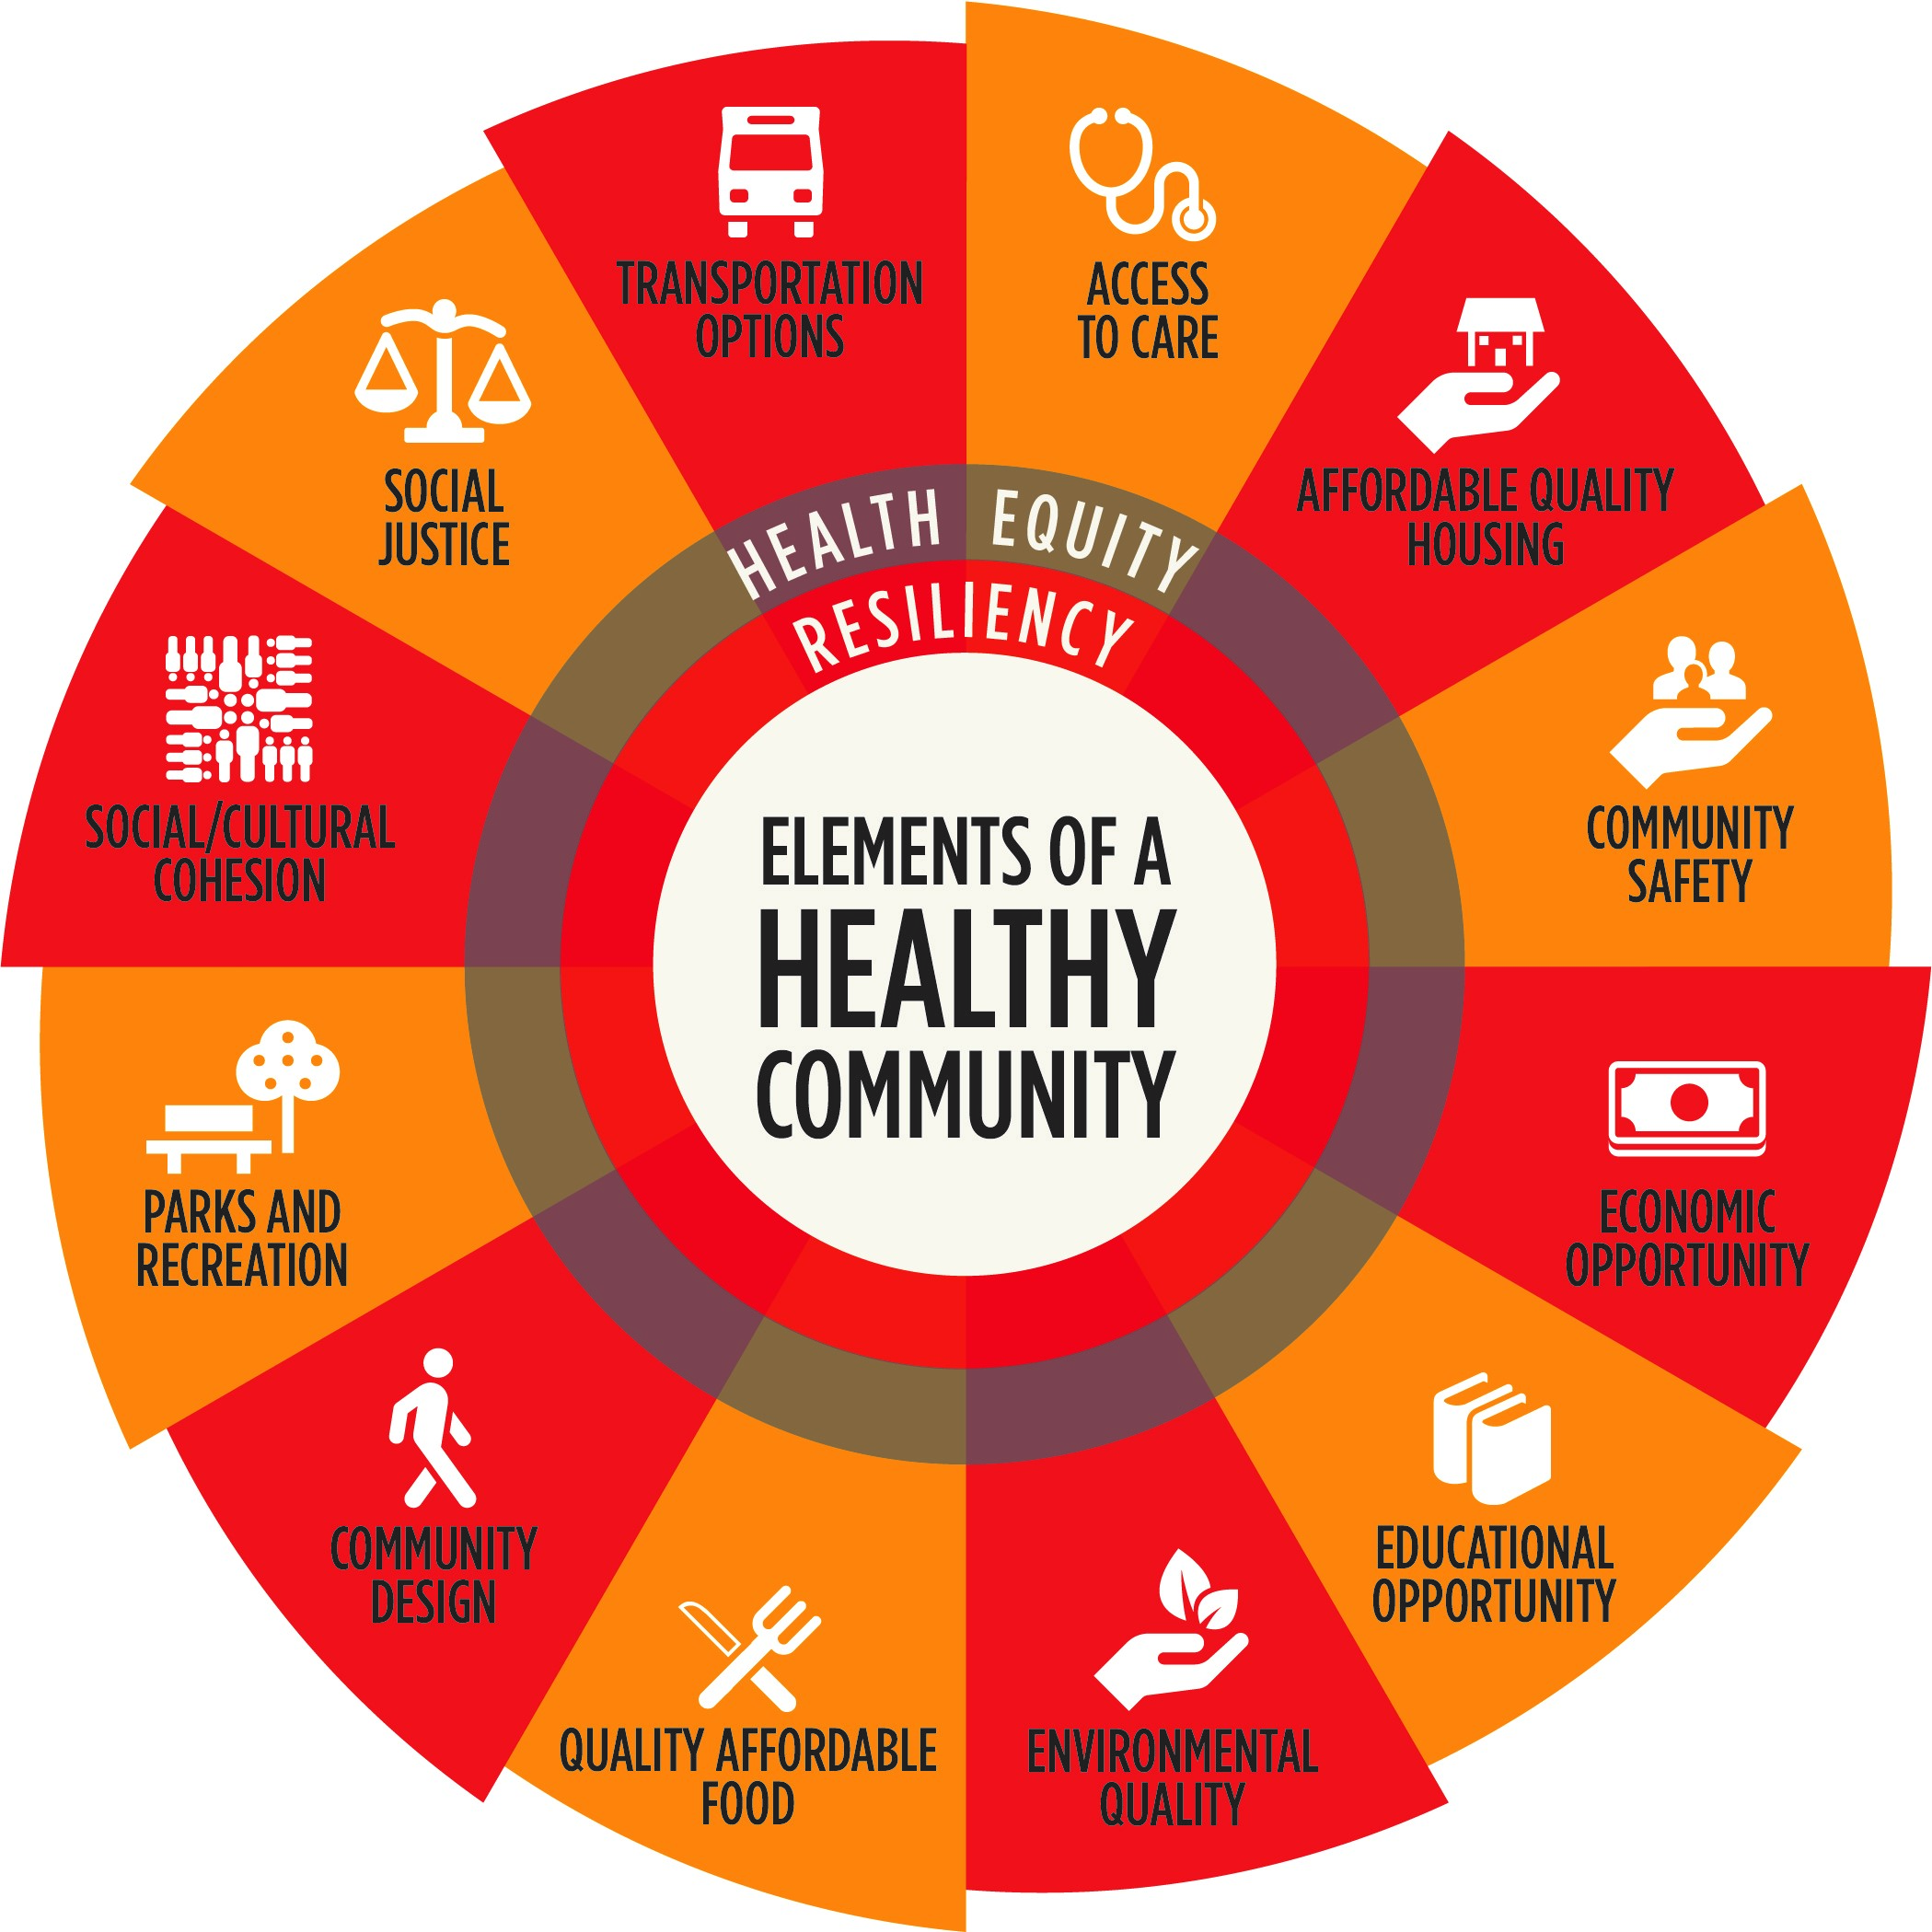 the important elements for a healthy community